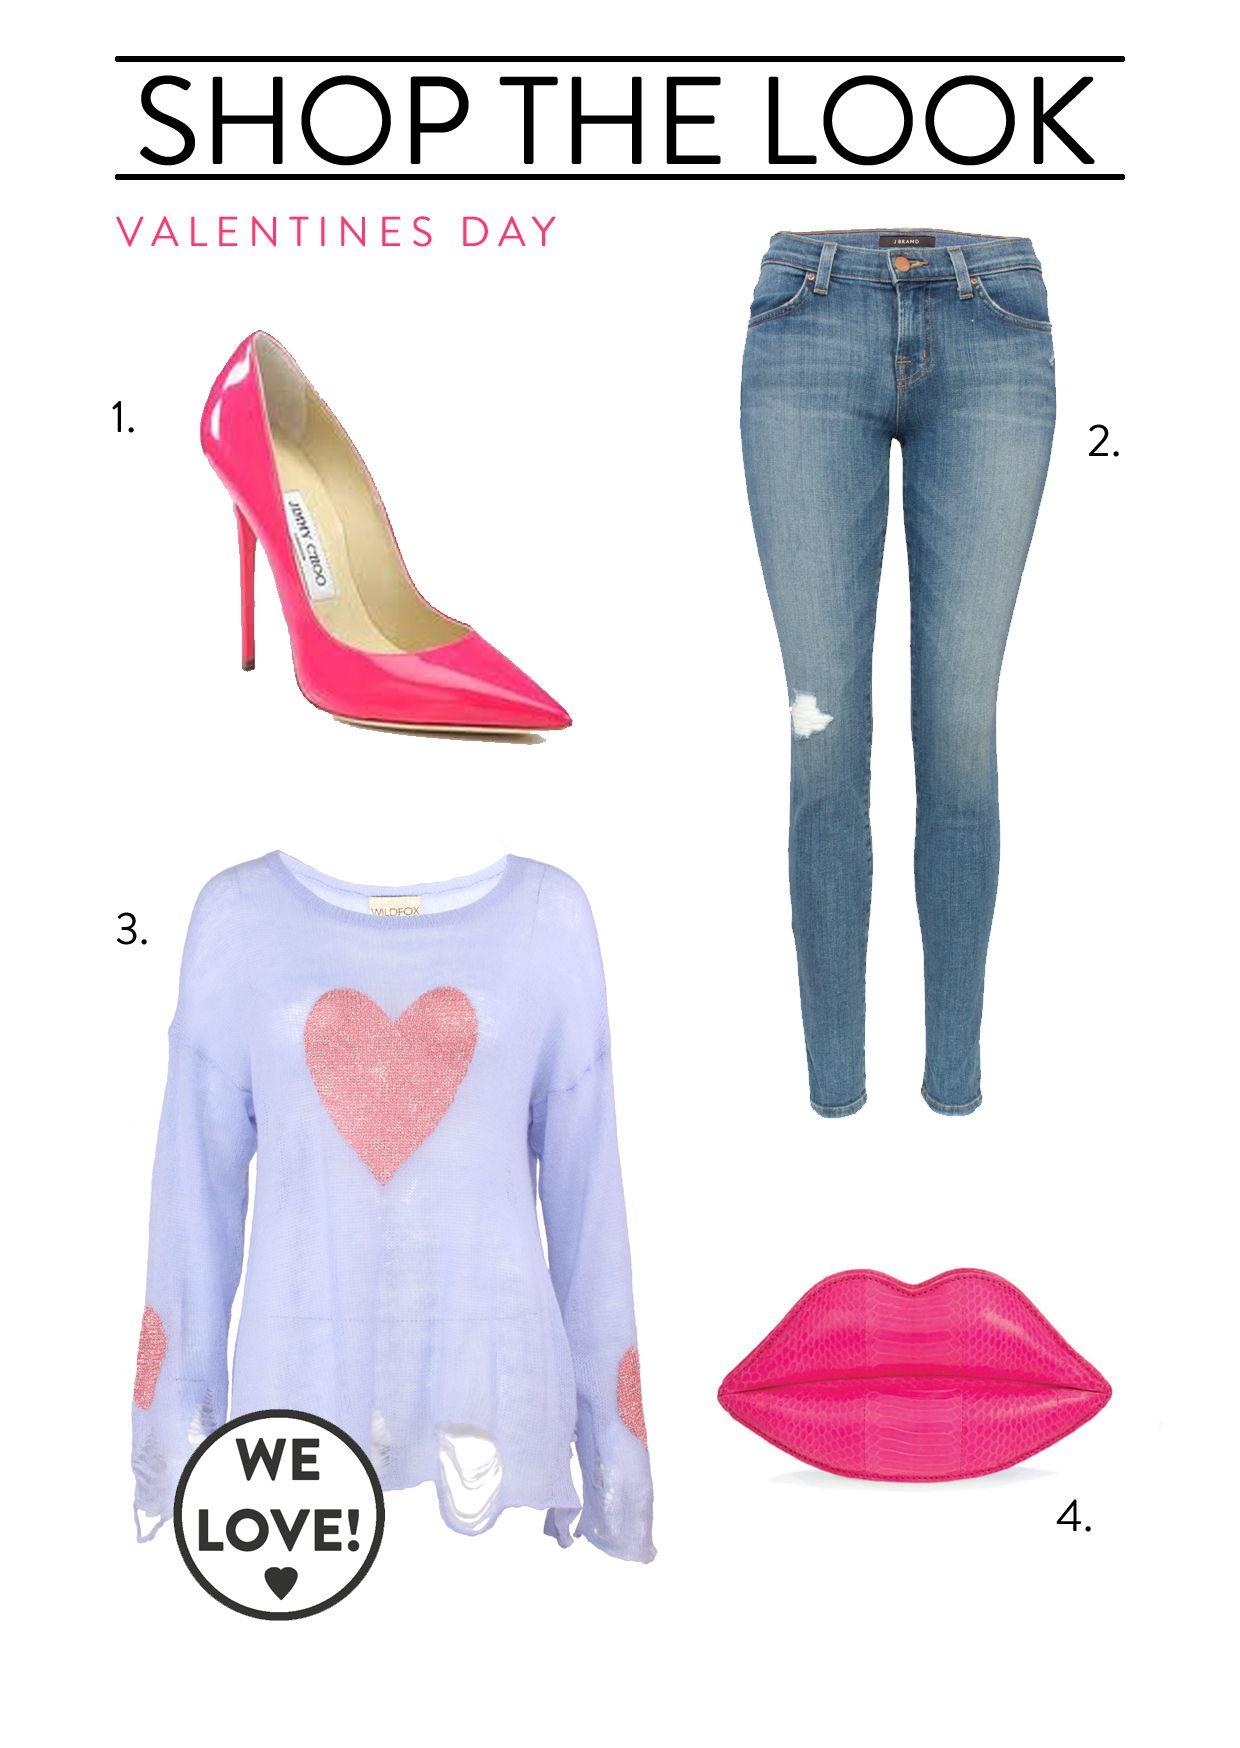 www.miminoor.com #ValentinesDay  1.Pink heels from Jimmy Choo  2. J brand 811 in revenge http://www.miminoor.com/jeans/j-brand-skinny-mbl-revenge.html  3. Wildfox happy heart sweater in purple http://www.miminoor.com/tops/wildfox-knitwear-pur-happy-hrt.html  4. Pink lips clutch by Lulu Guinness